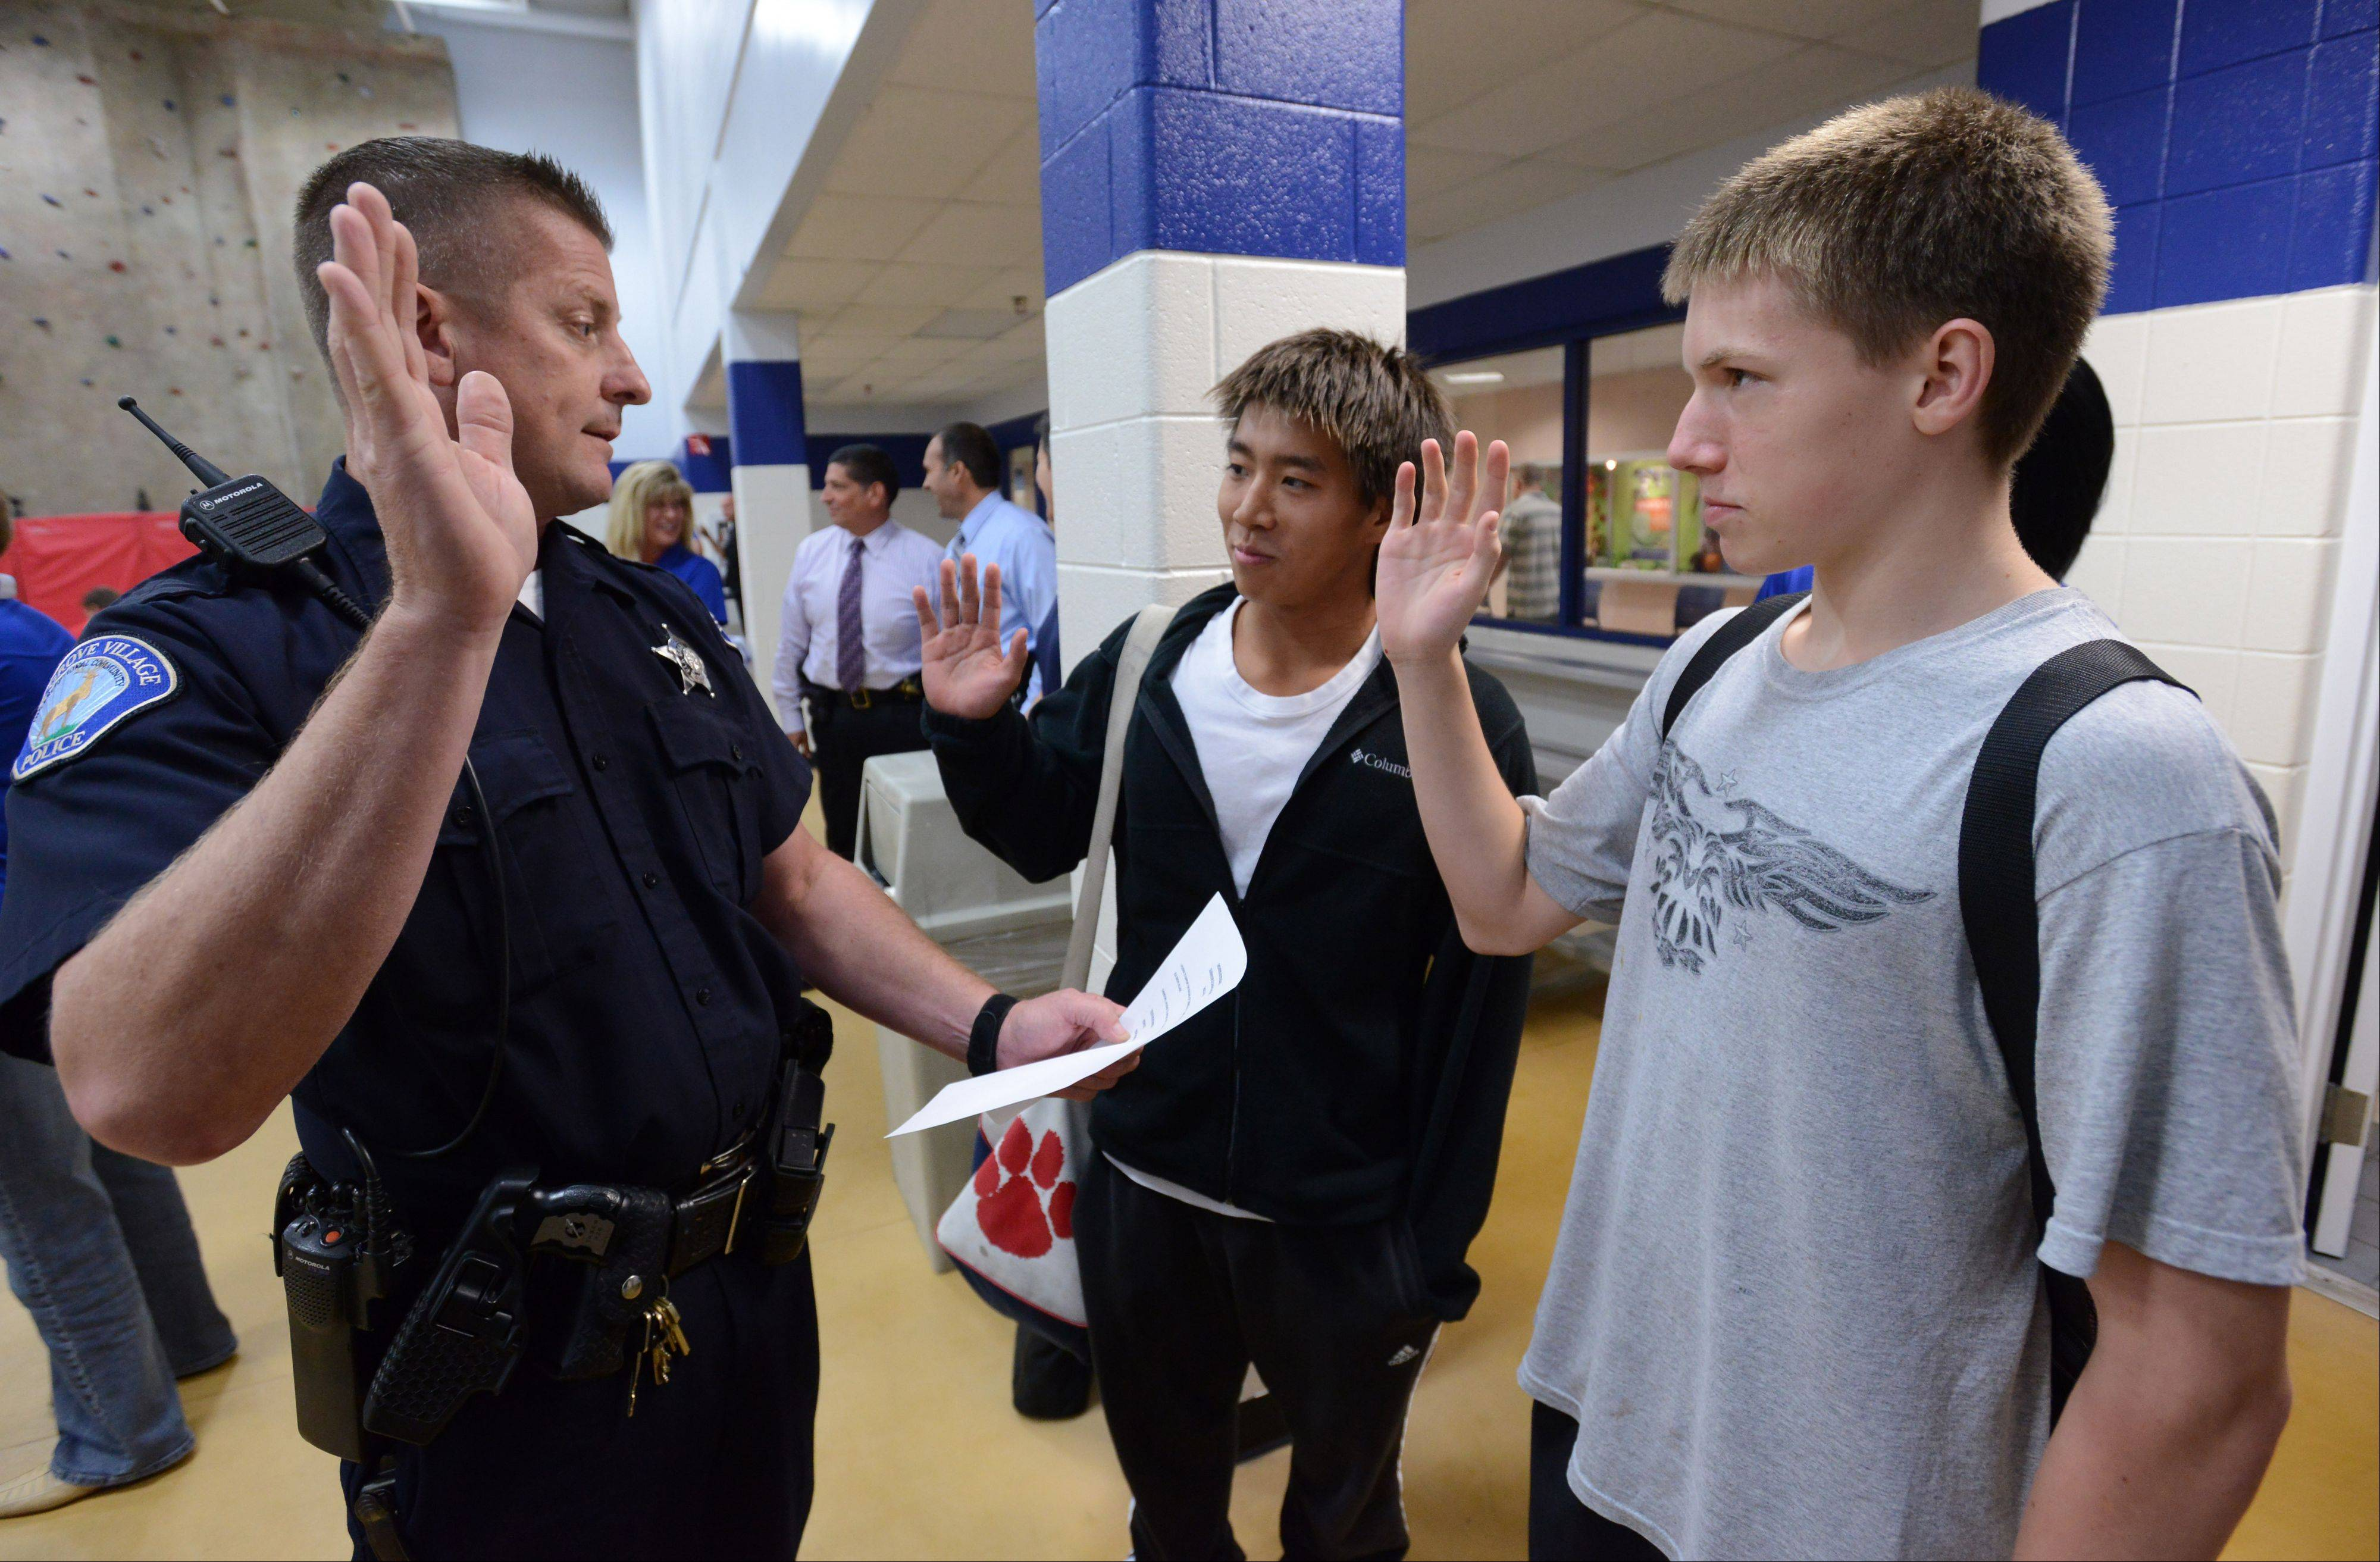 Elk Grove police officer Ed Thomas swears in Conant High School students Kazuki Morita, 17, left, and Keith Keppler, 16, at the Celebration of Character.